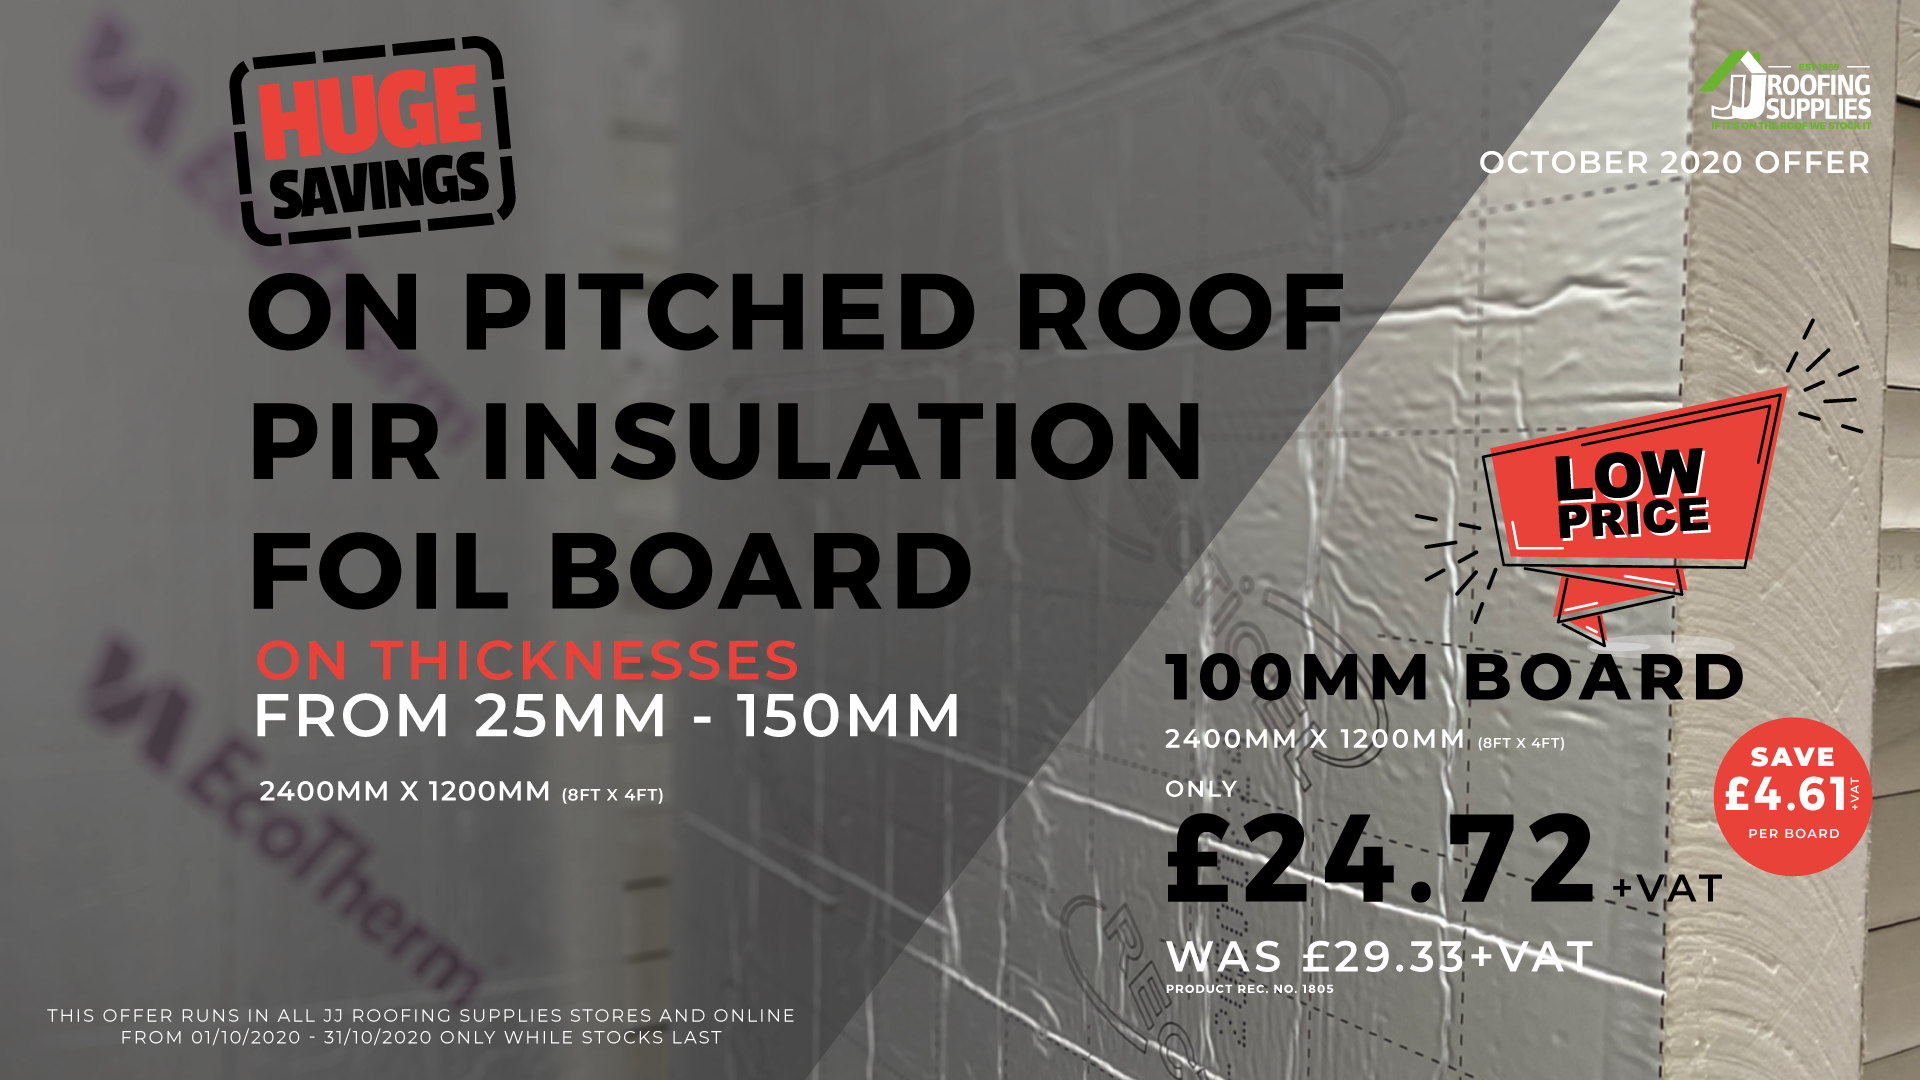 Huge Savings on Pitched Roof PIR Foil Board Insulation at JJ Roofing Supplies in October 2020